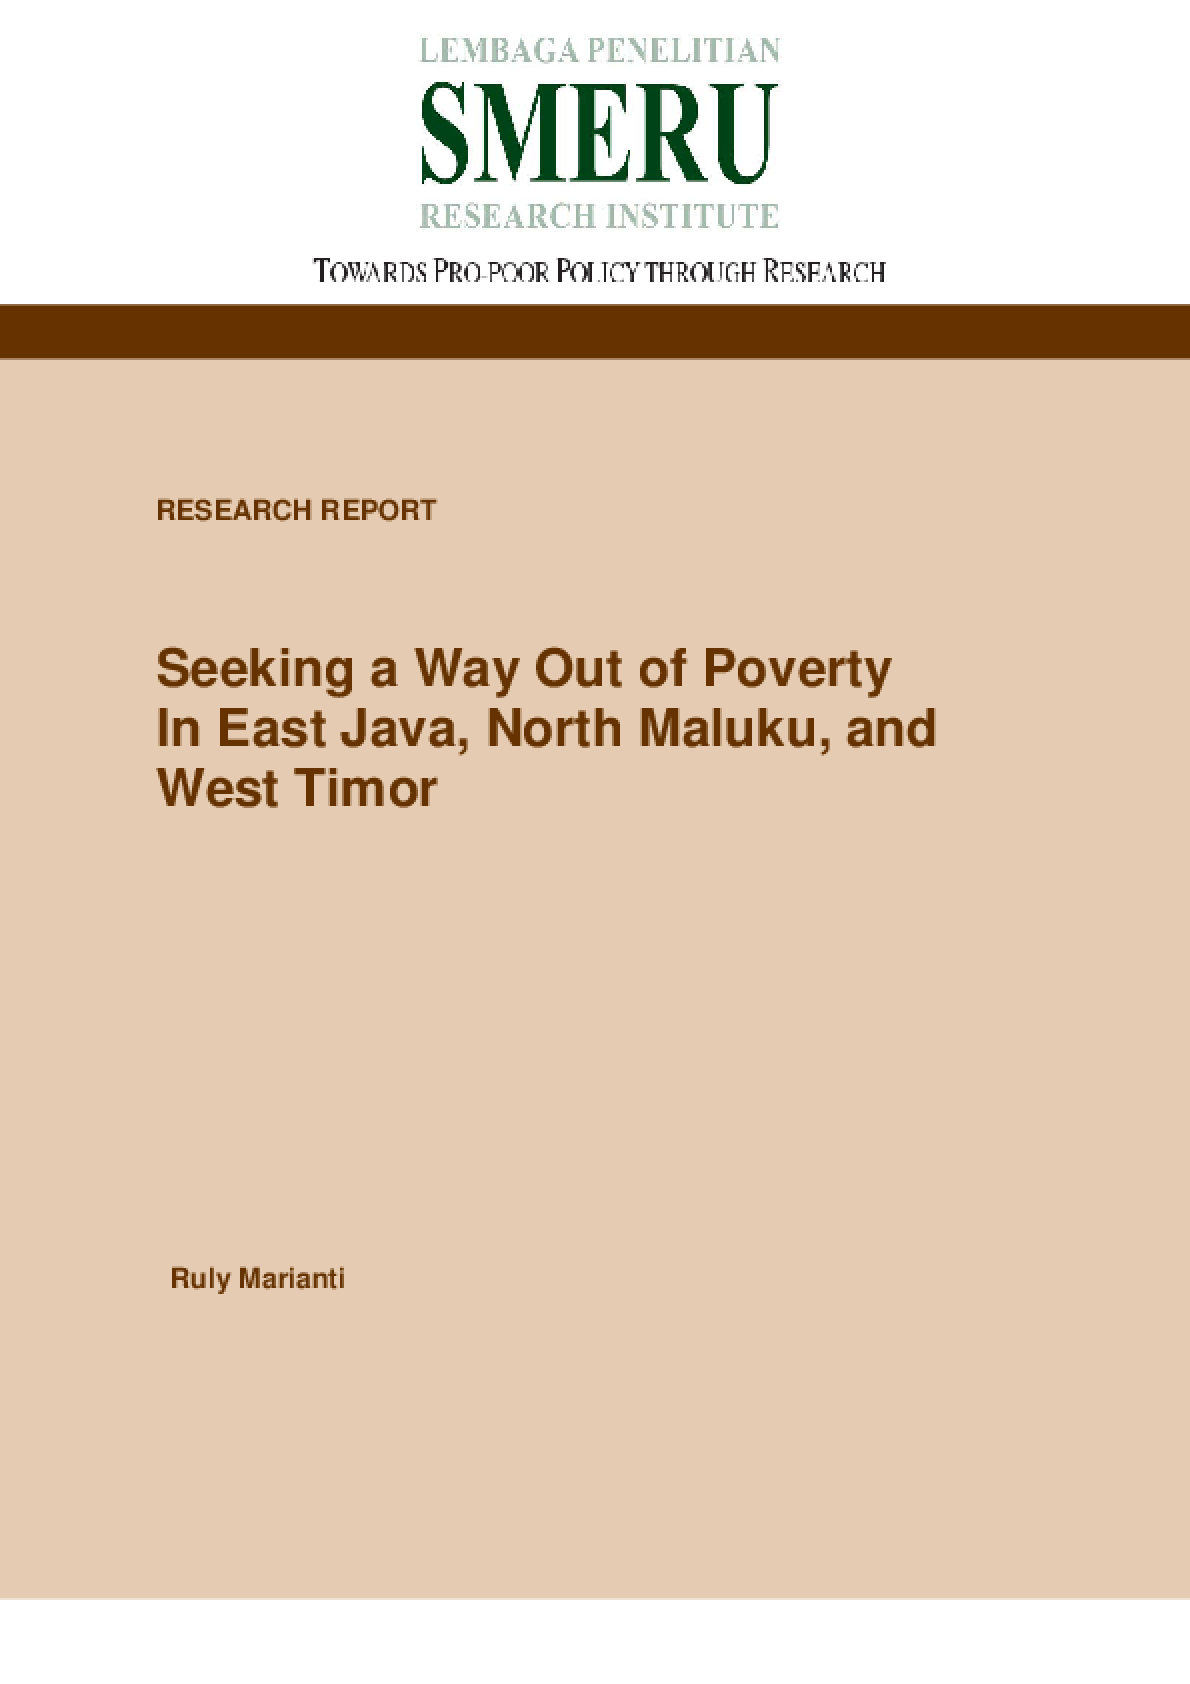 Seeking a Way Out of Poverty in East Java, North Maluku, and West Timor